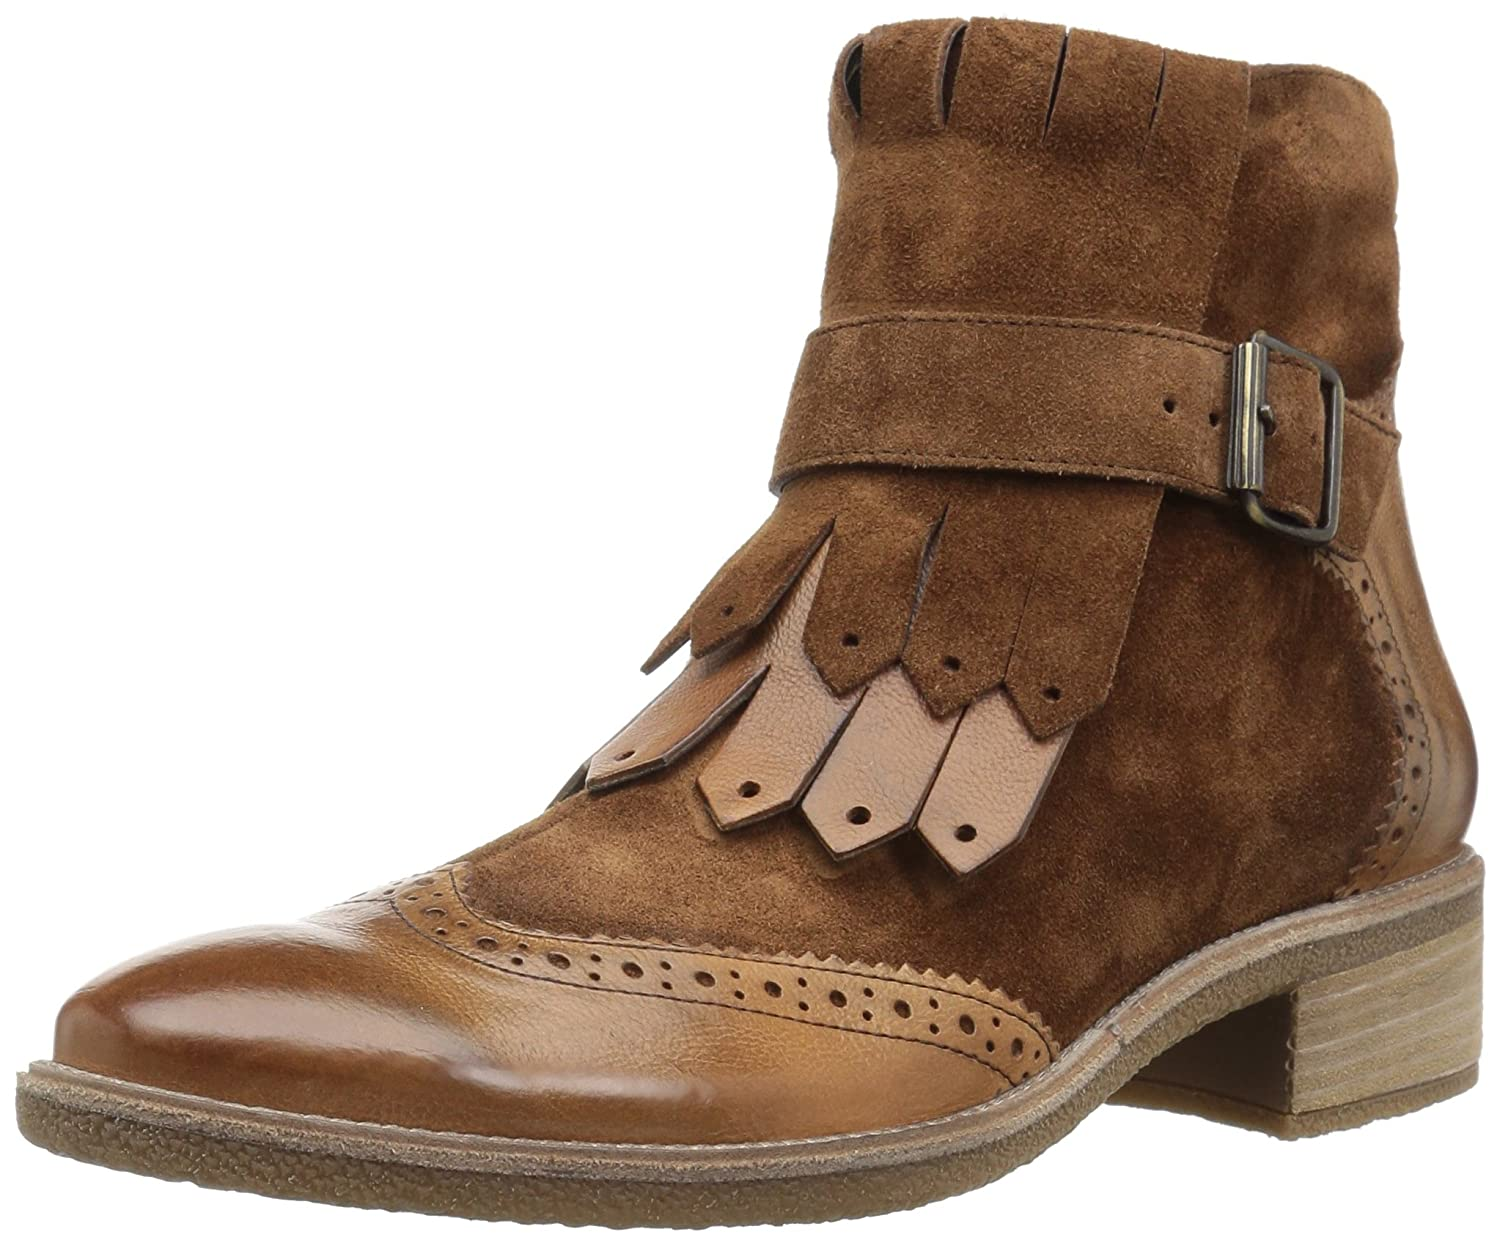 Paul B06XPSGPLX Green Women's Miller Ankle Boot B06XPSGPLX Paul 6 B(M) US|Cuoio Combo 0e0f65